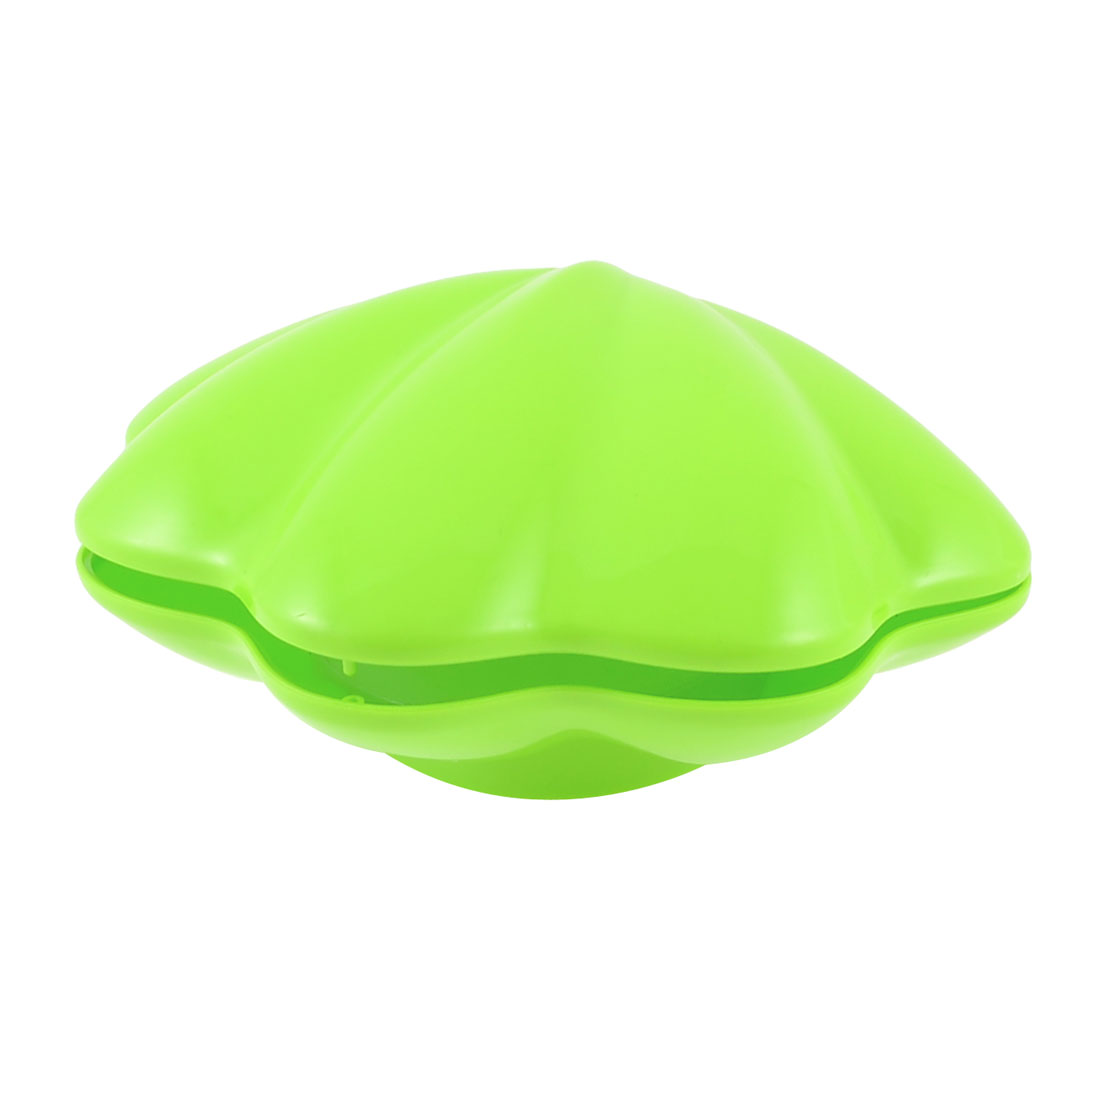 Home Bedroom Decor Shell Style Color Changing LED USB Nightlight Green